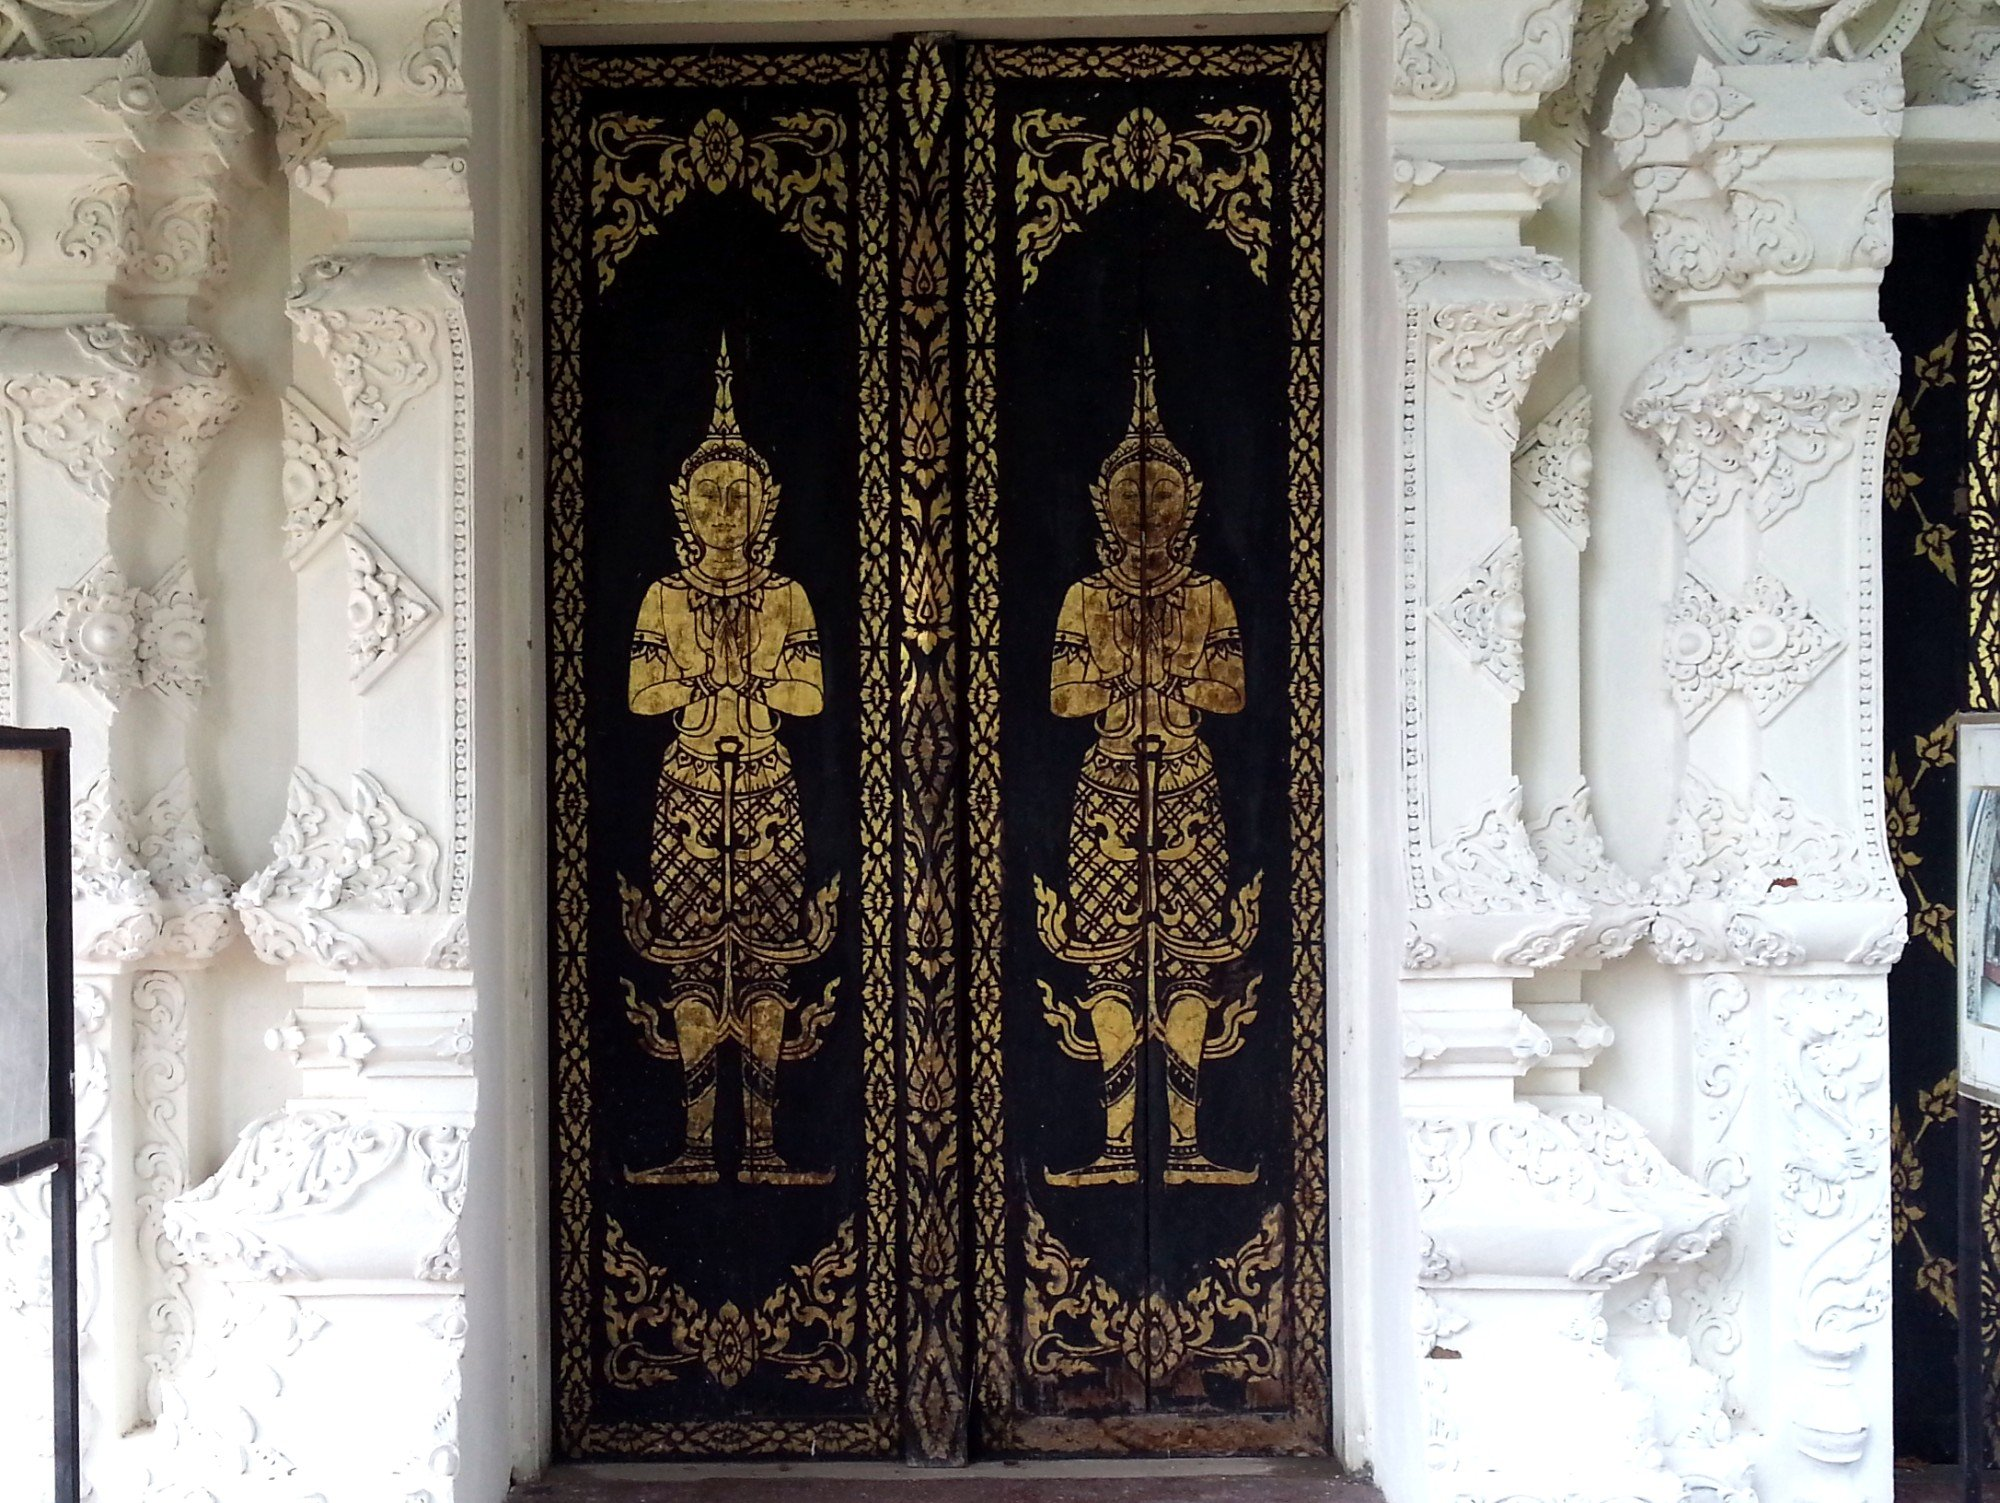 Entrance doors to the ordination hall at Wat Pratu Pong